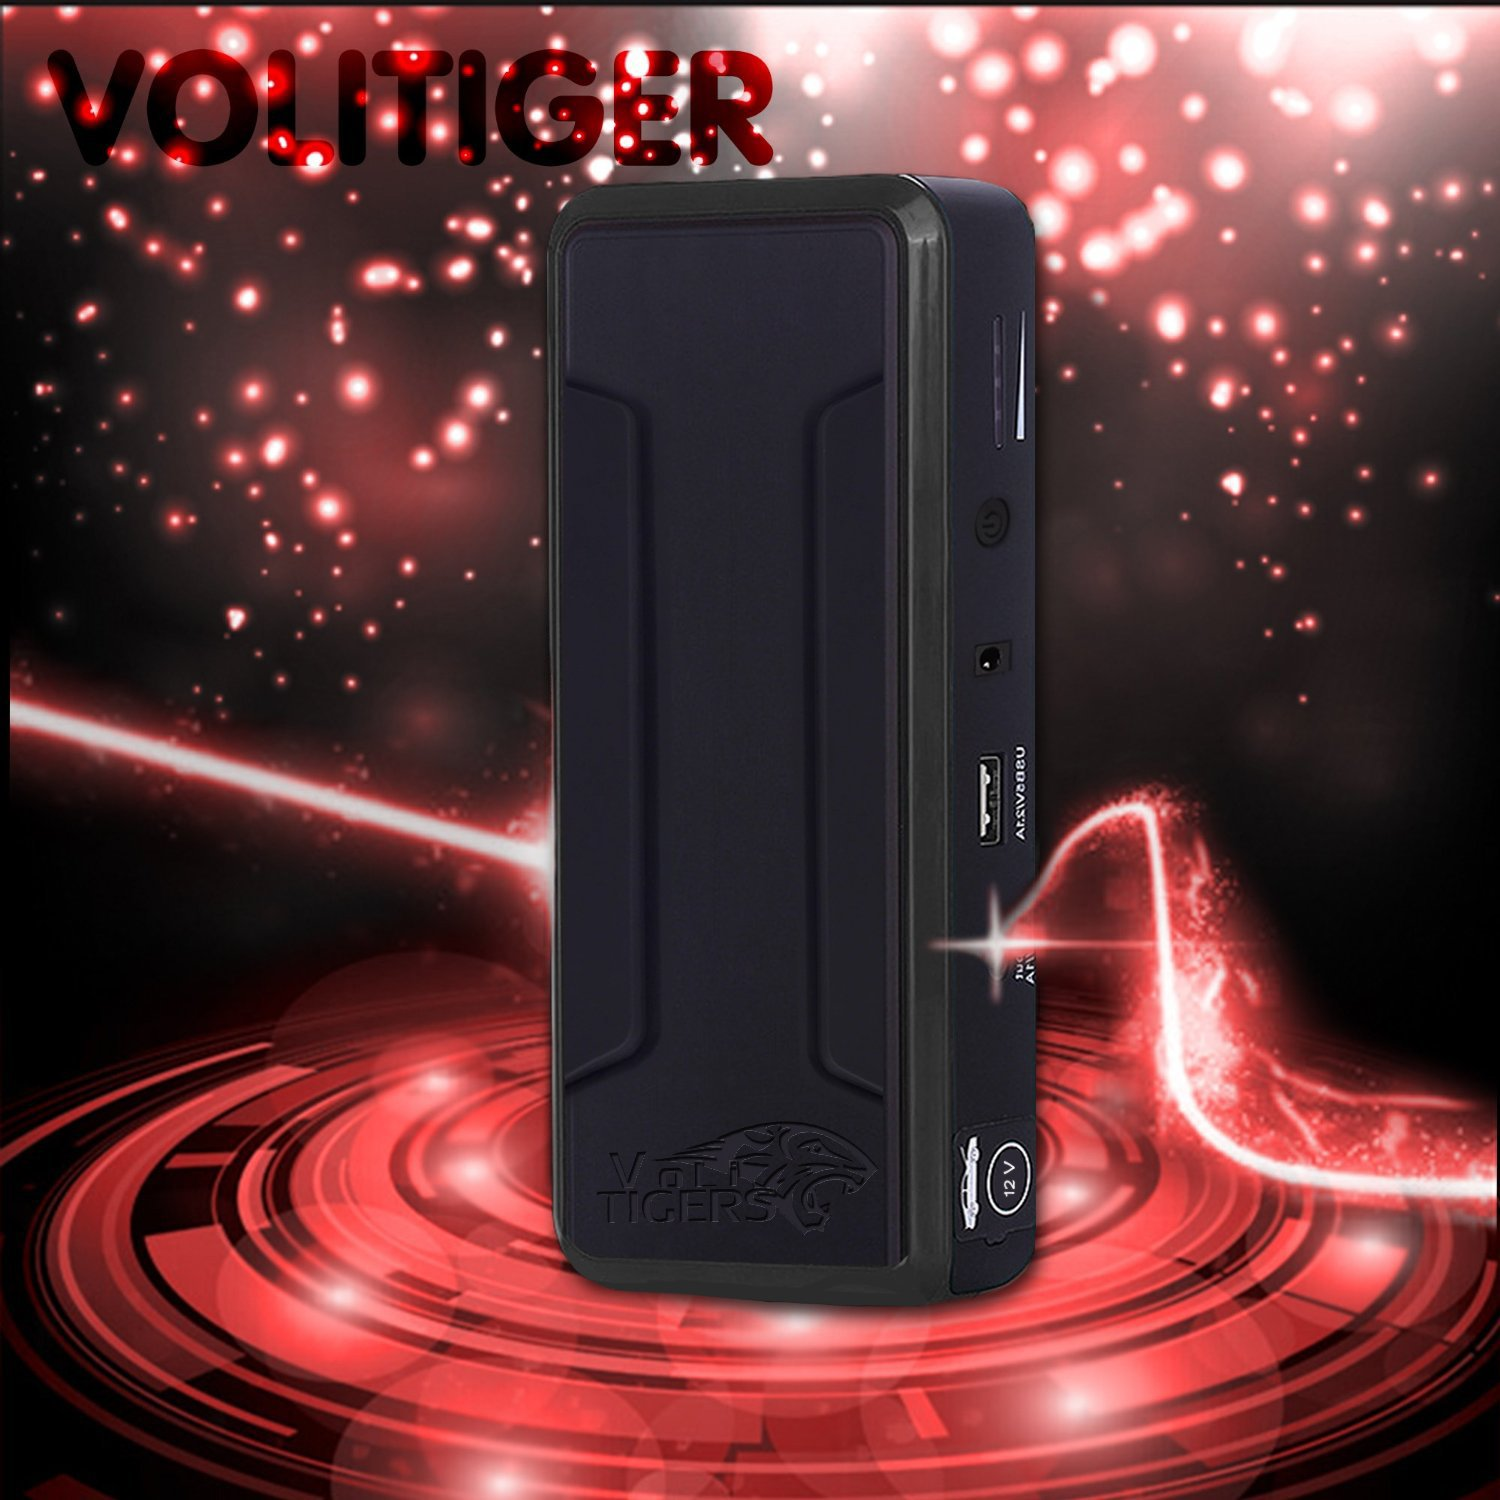 (Power Upgraded) Volitiger 30000mah Never Stop Emergency Portable Car Jump Starter Power Bank with Light Car Power Bank(volitiger.com) Emergency for Cellphone (Super Tiger) - 5 Year Limited Warranty